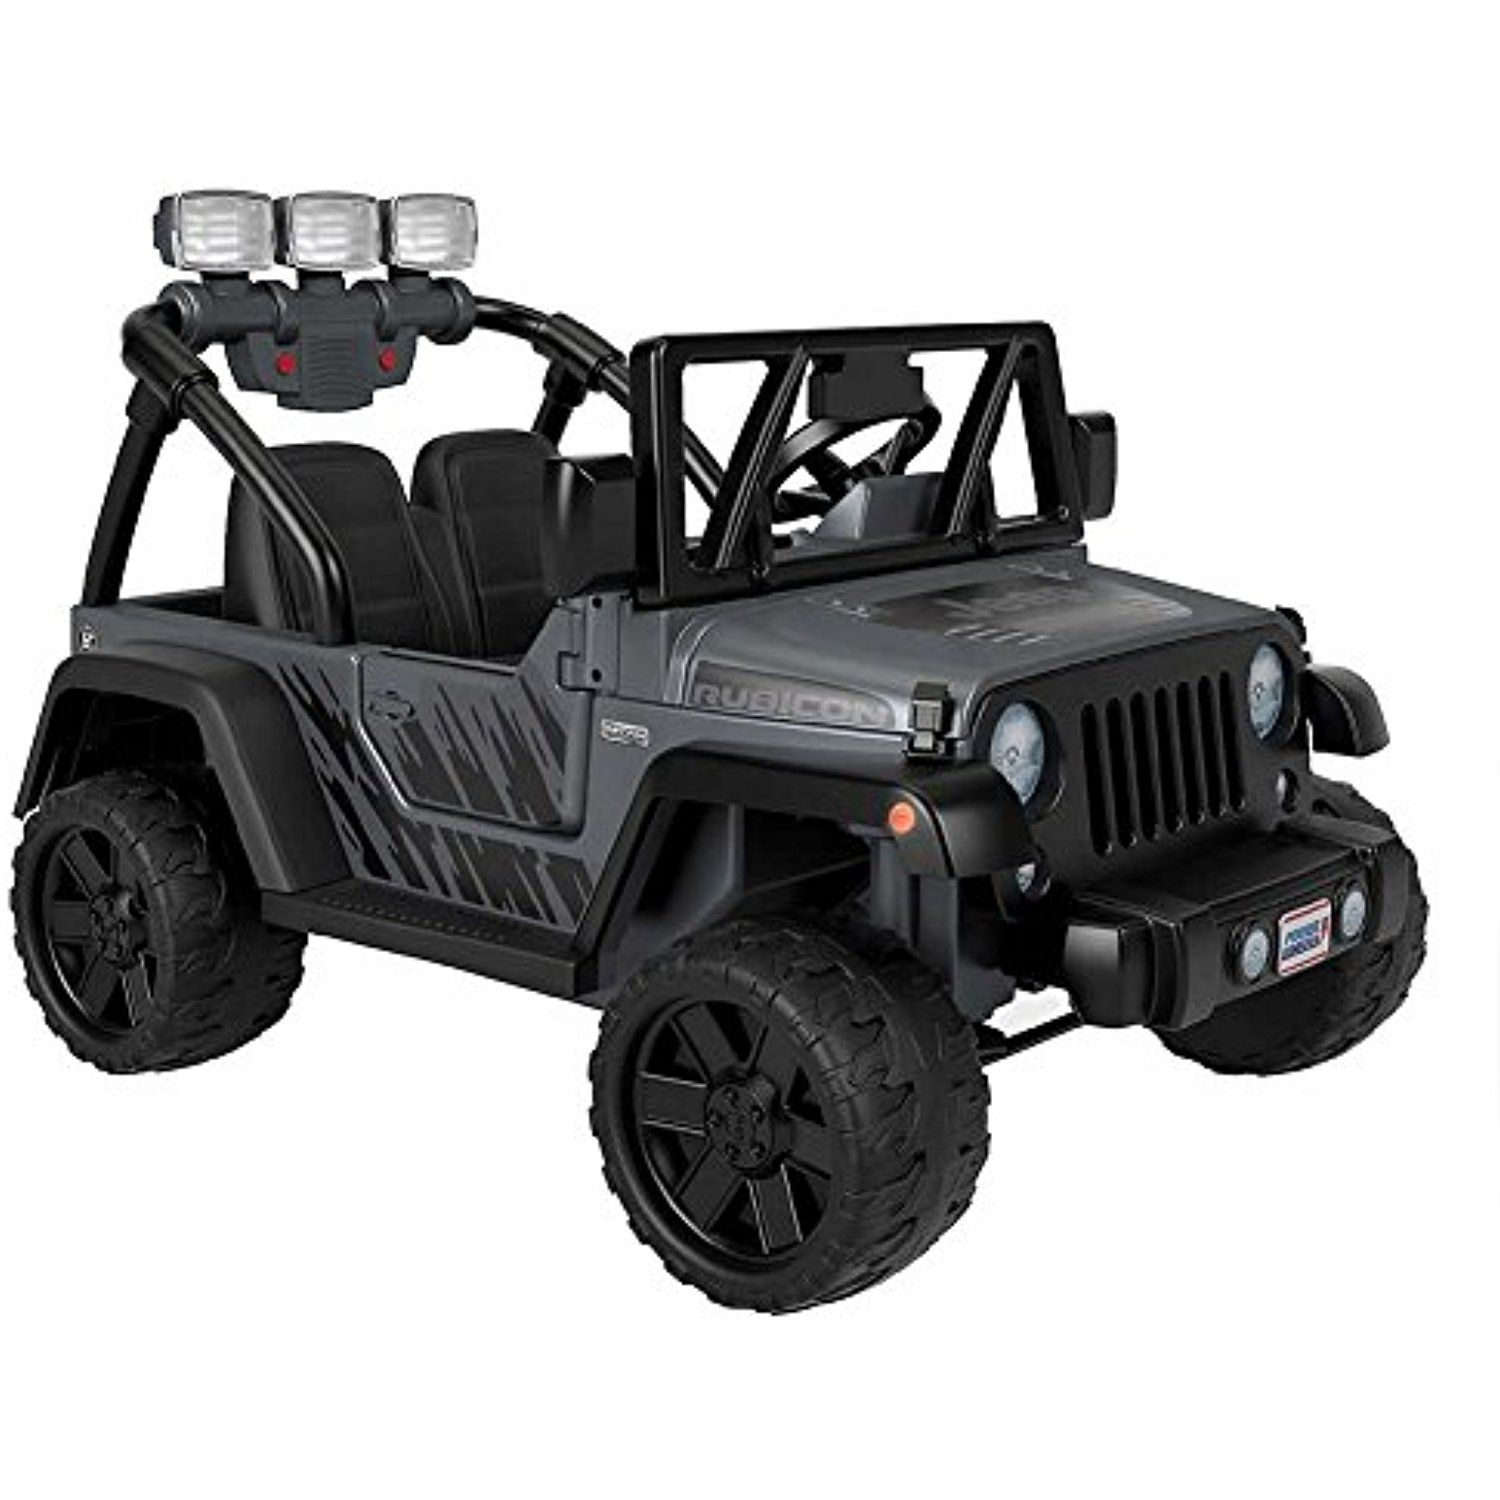 Fisher Price Power Wheels Deluxe Jeep Rubicon Wrangler 12v Ride On Details Can Be Found By Clicking On The Image This Is A Jeep Rubicon Power Wheels Jeep